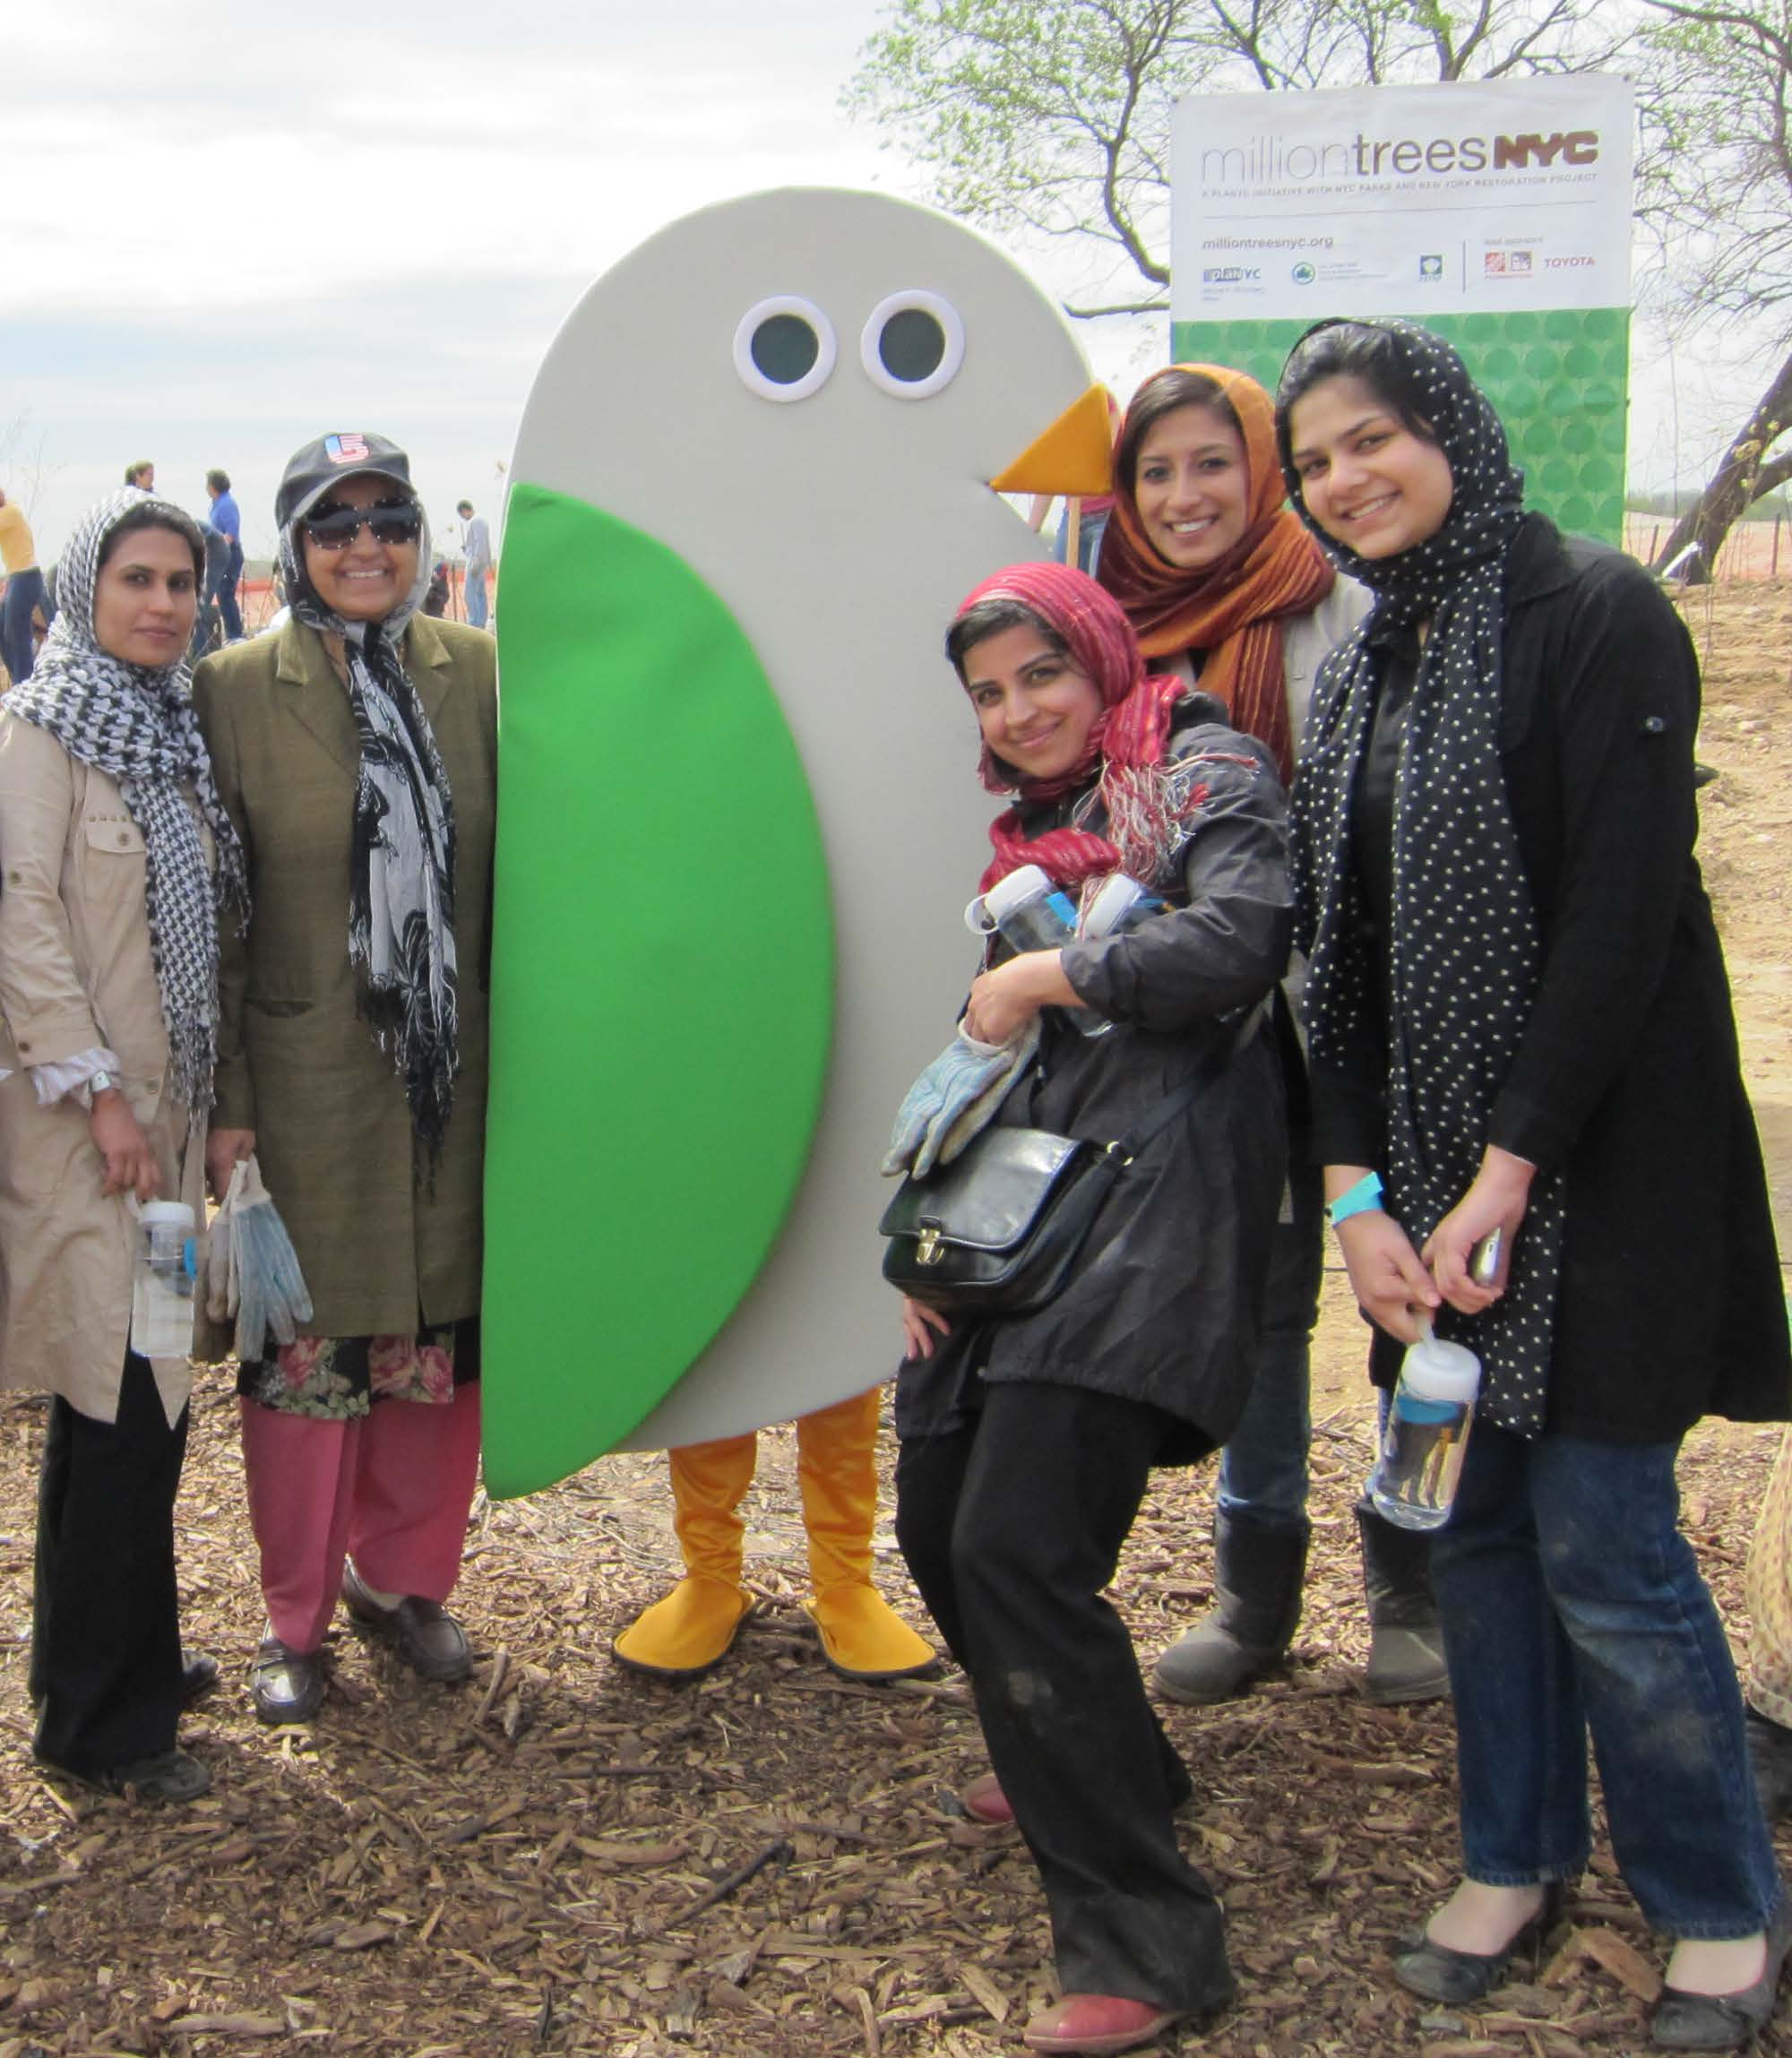 People posing with the GreeNYC mascot, Birdie